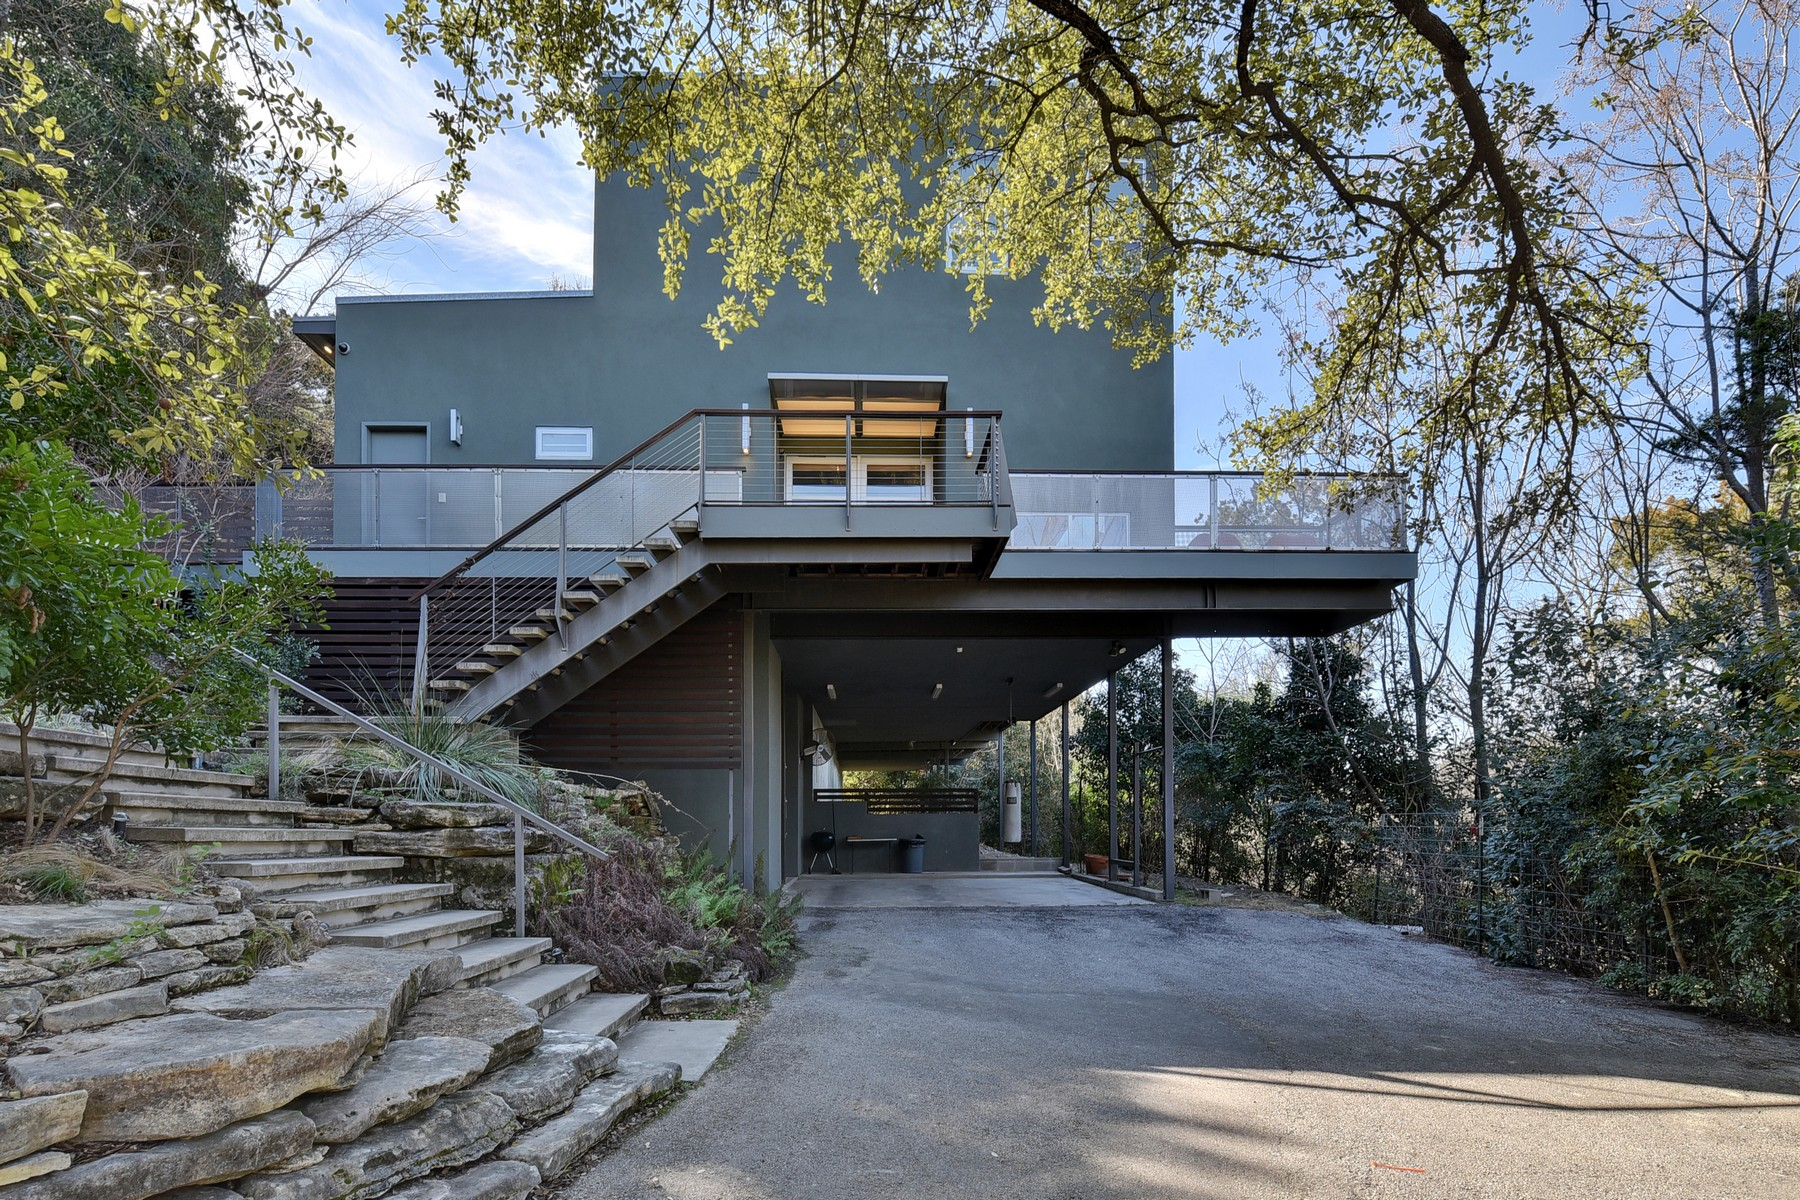 Single Family Home for Sale at Contemporary, Tranquil Oasis in Northwest Hills 3611 Hillbrook Dr Austin, Texas, 78731 United States